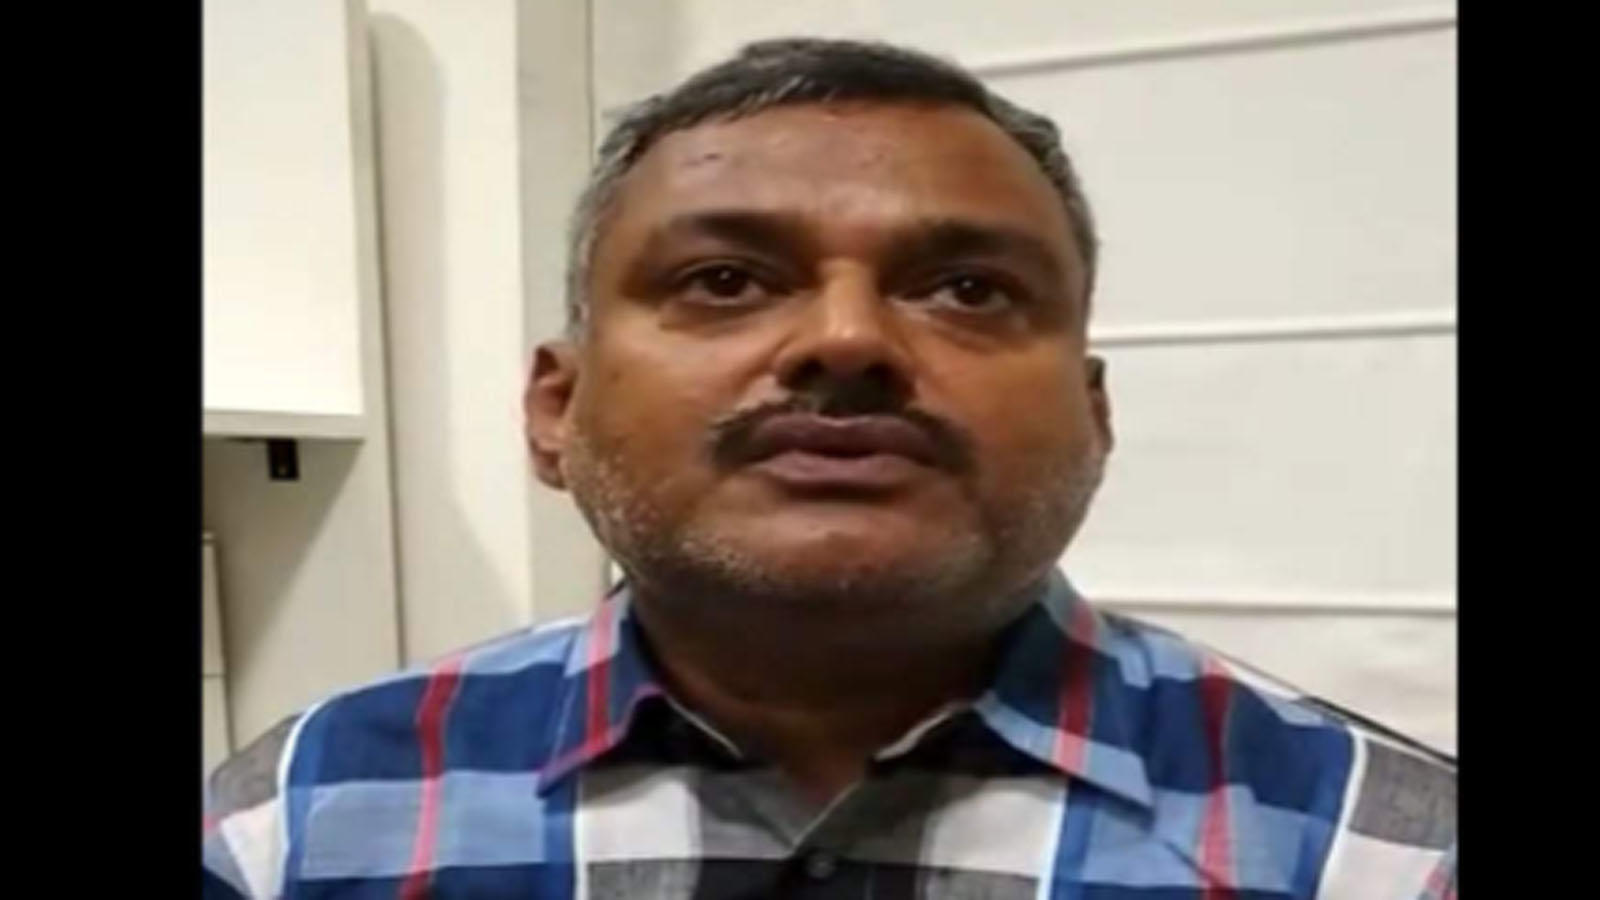 kanpur-gangster-vikas-dubey-escapes-from-faridabad-hotel-before-cops-arrive